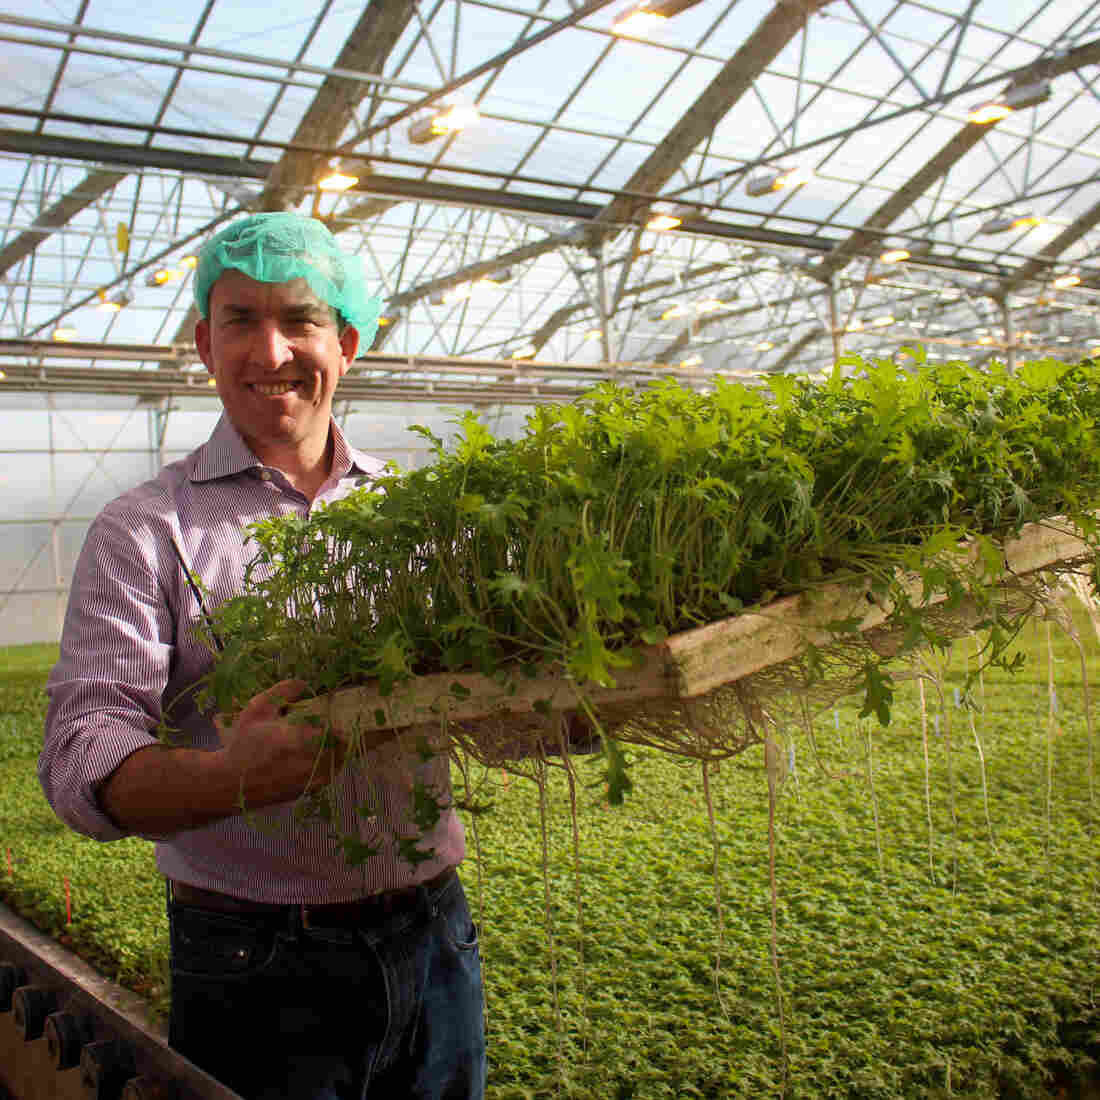 Vegetables Under Glass: Greenhouses Could Bring Us Better Winter Produce